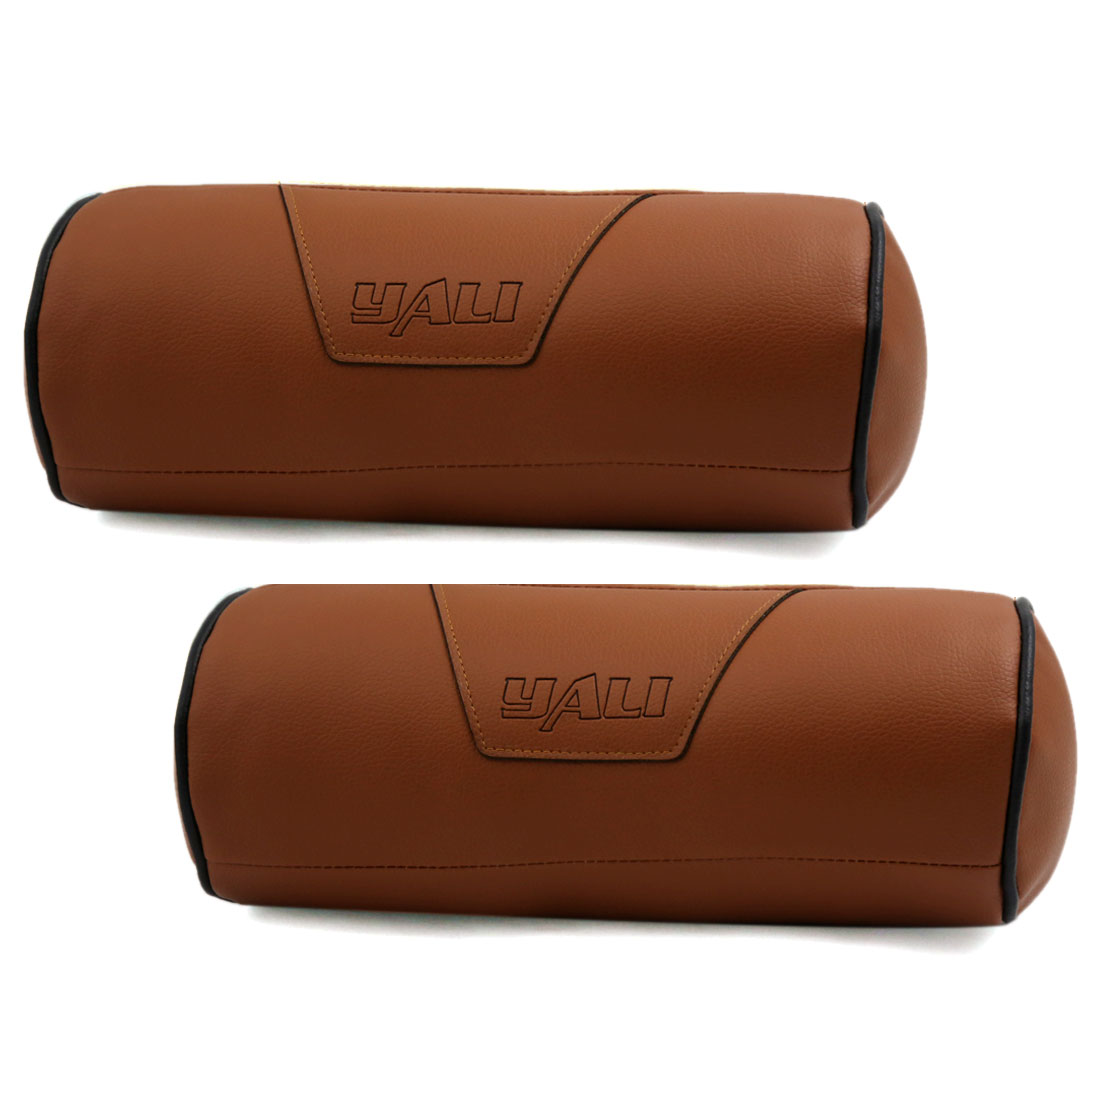 Cylinder Design Zipper Closure Faux Leather Elastic Band Pillow Neck Rest Support Cushion Brown for Car